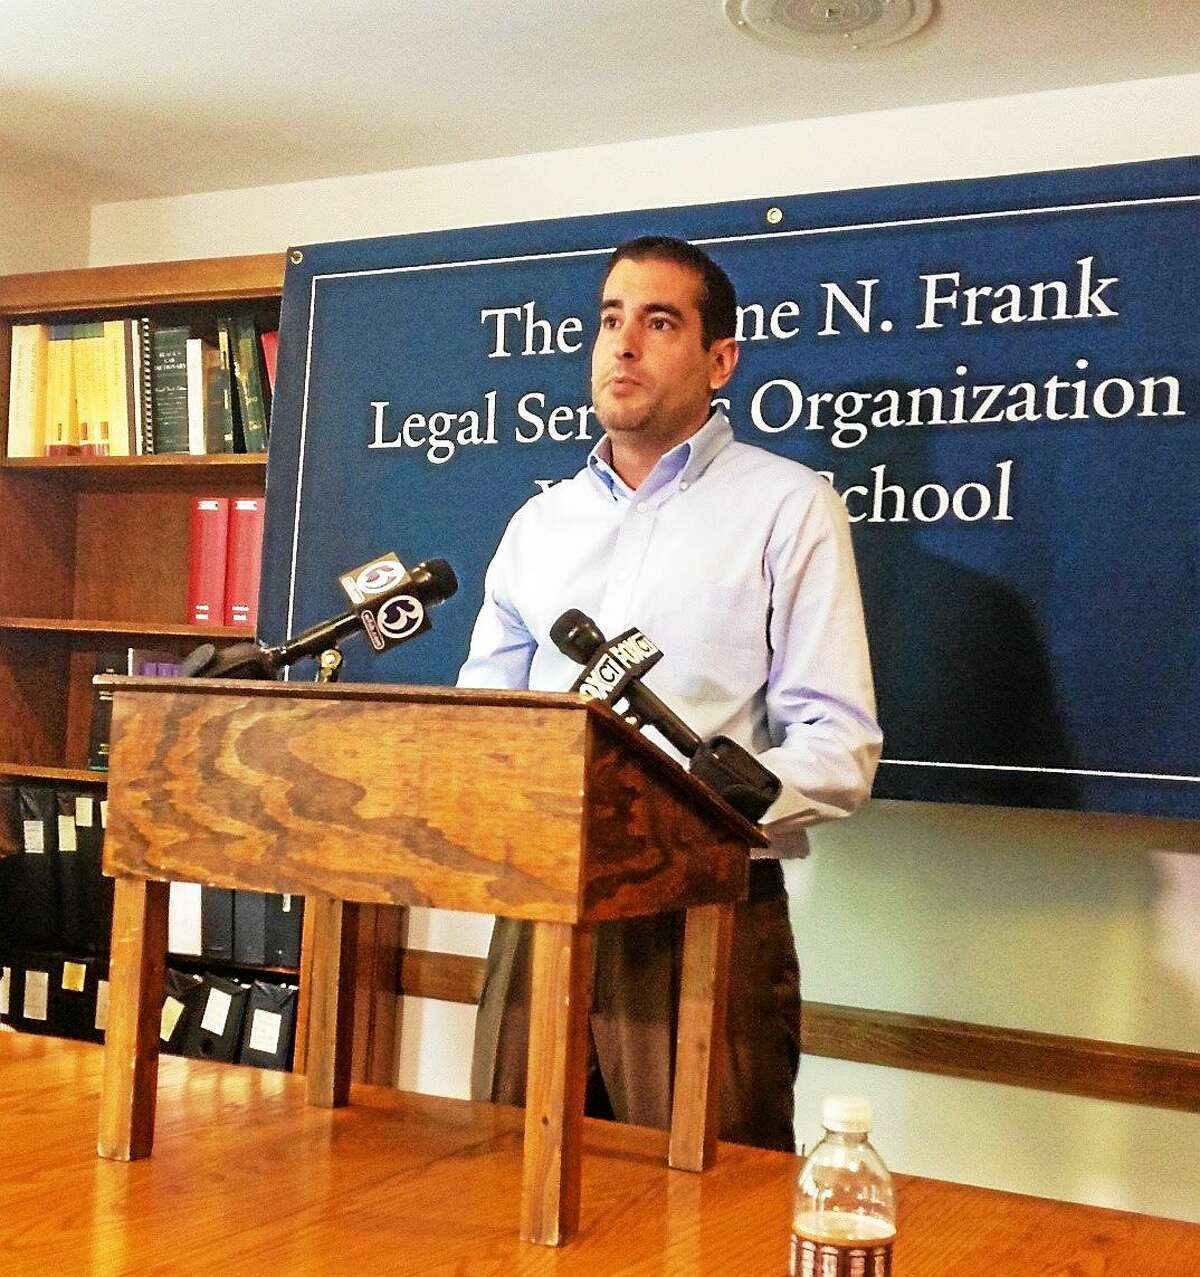 Salvador Milardo, son of Paolina Milardo, becomes emotional as he talks about his mother's deportation at a press conference at the Yale Law School in New Haven.